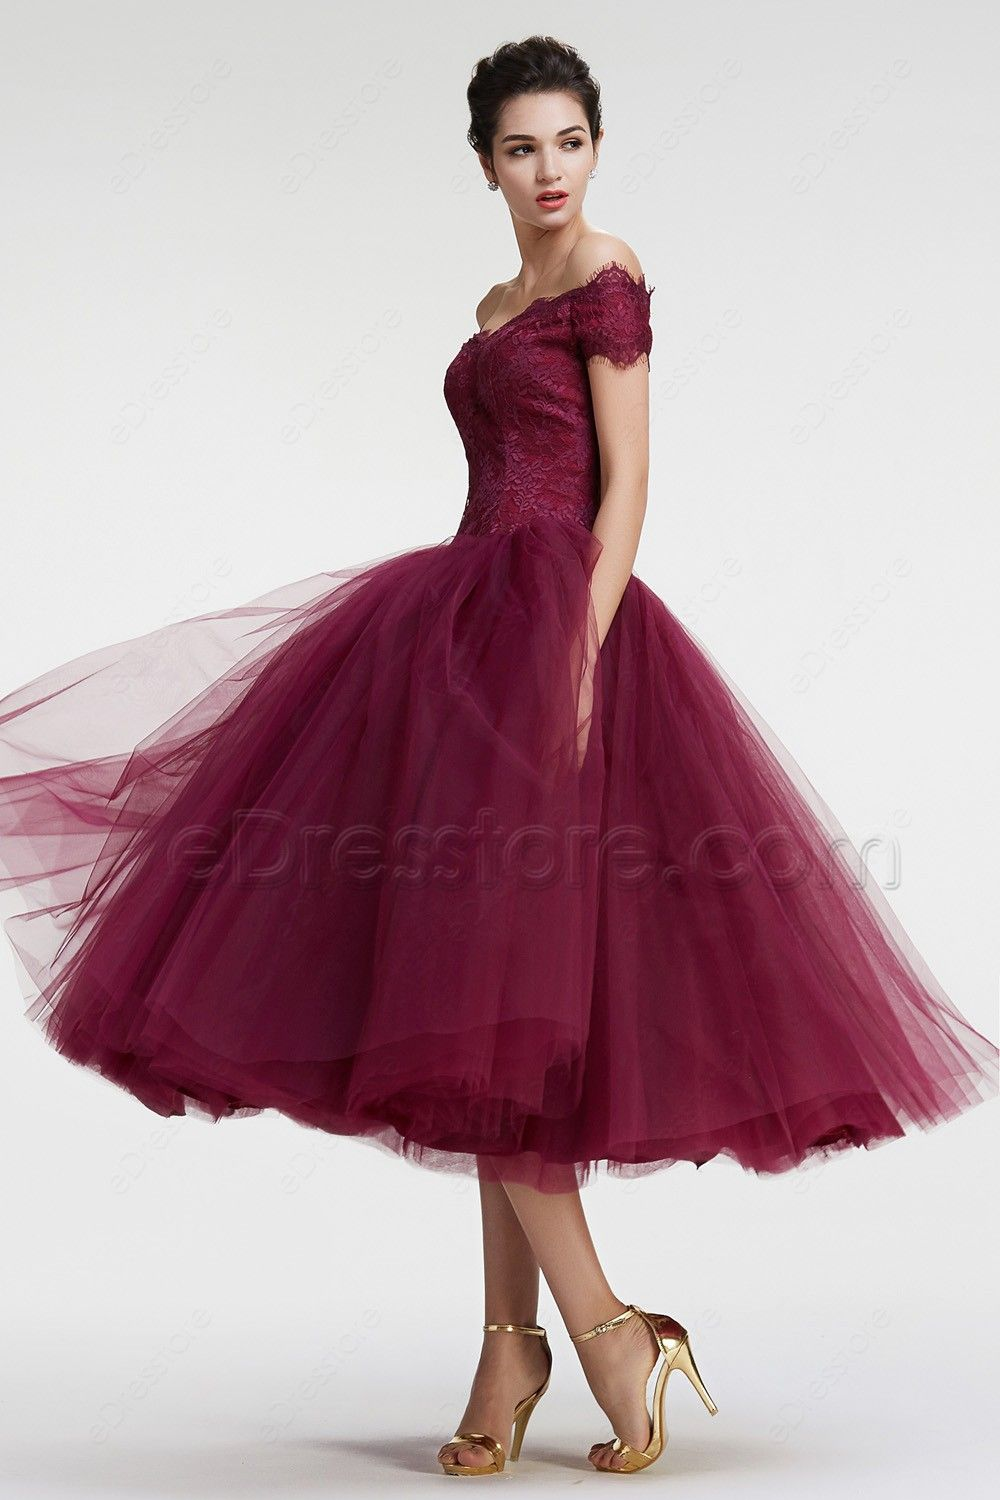 2ae542b8303d Burgundy Off the Shoulder Ball Gown VIntage Prom Dresses Tea Length ...